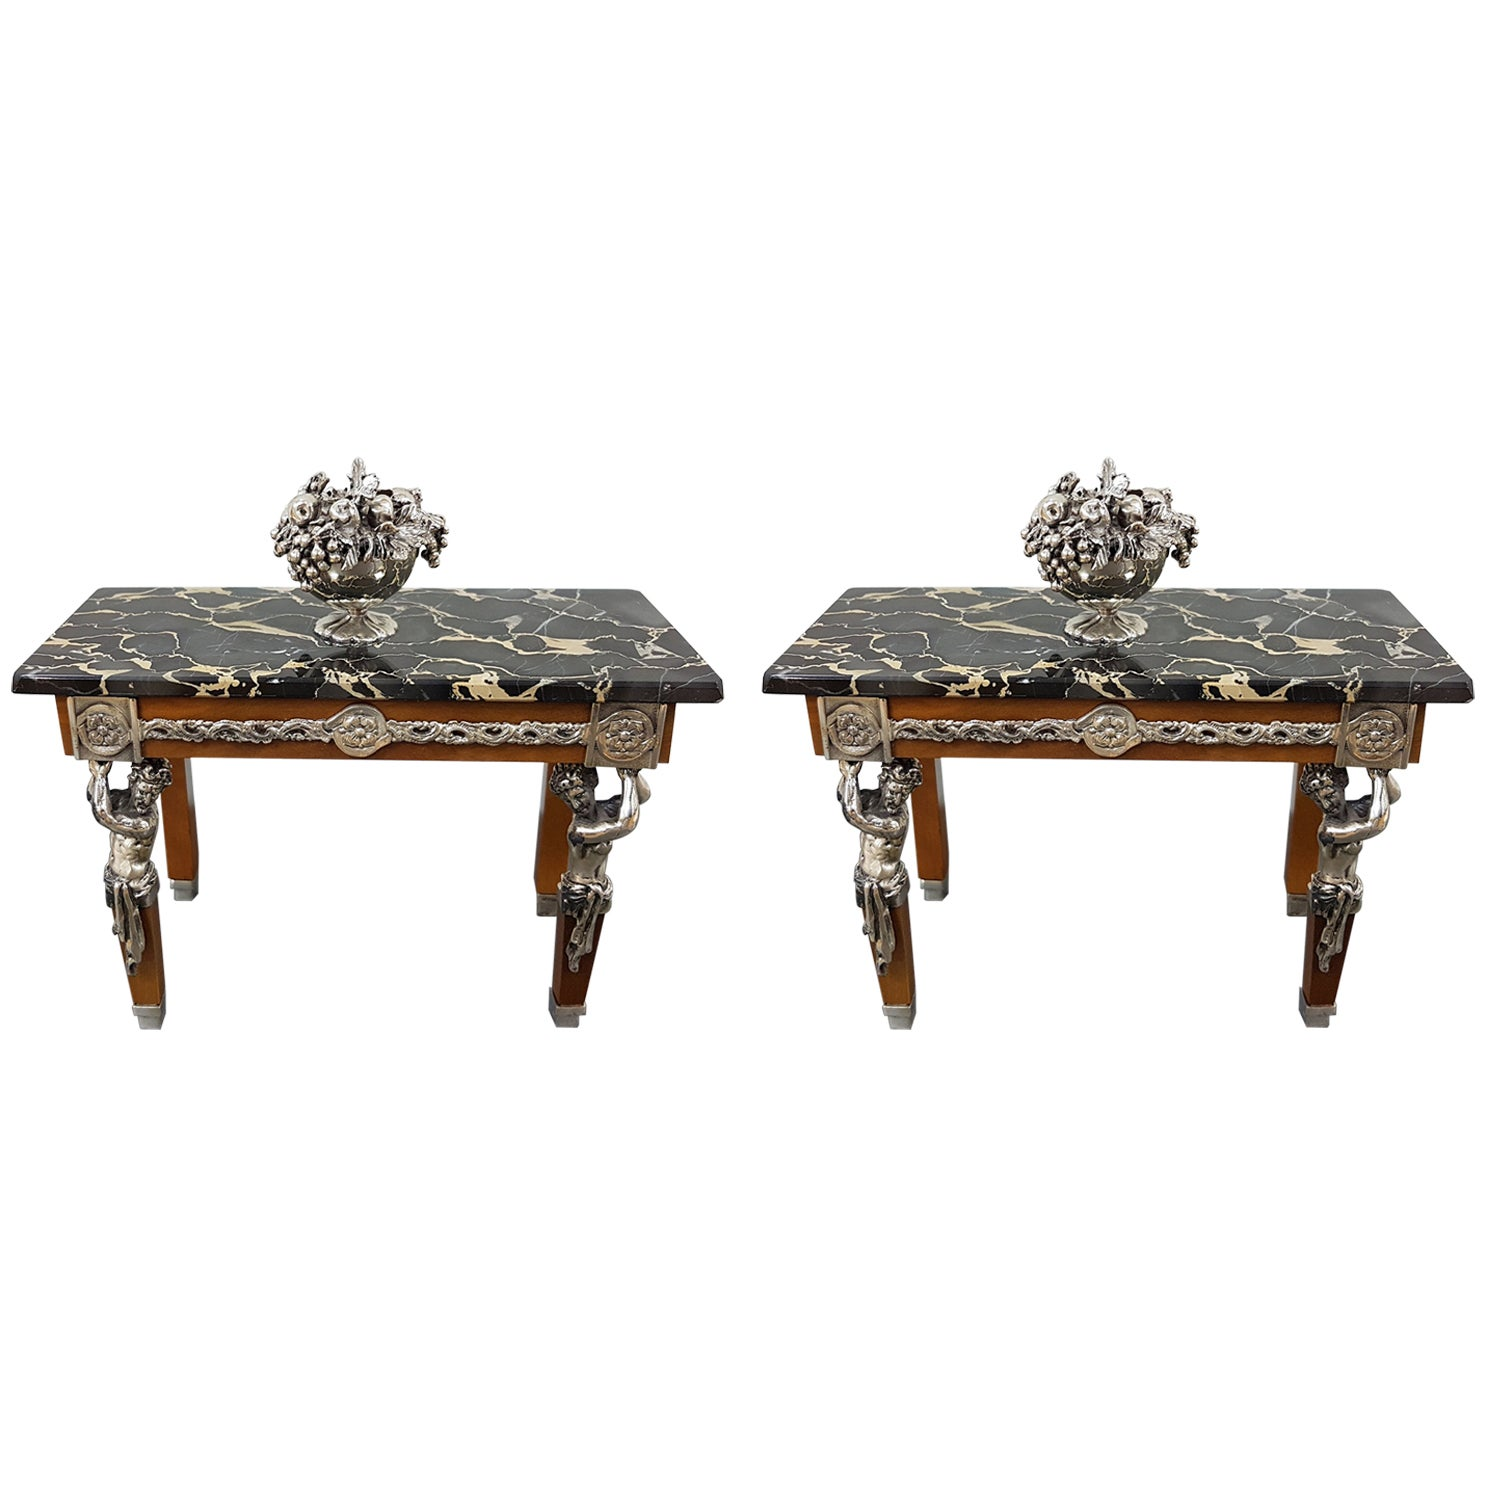 20th Century Italian Sterling Silver Miniature Tables